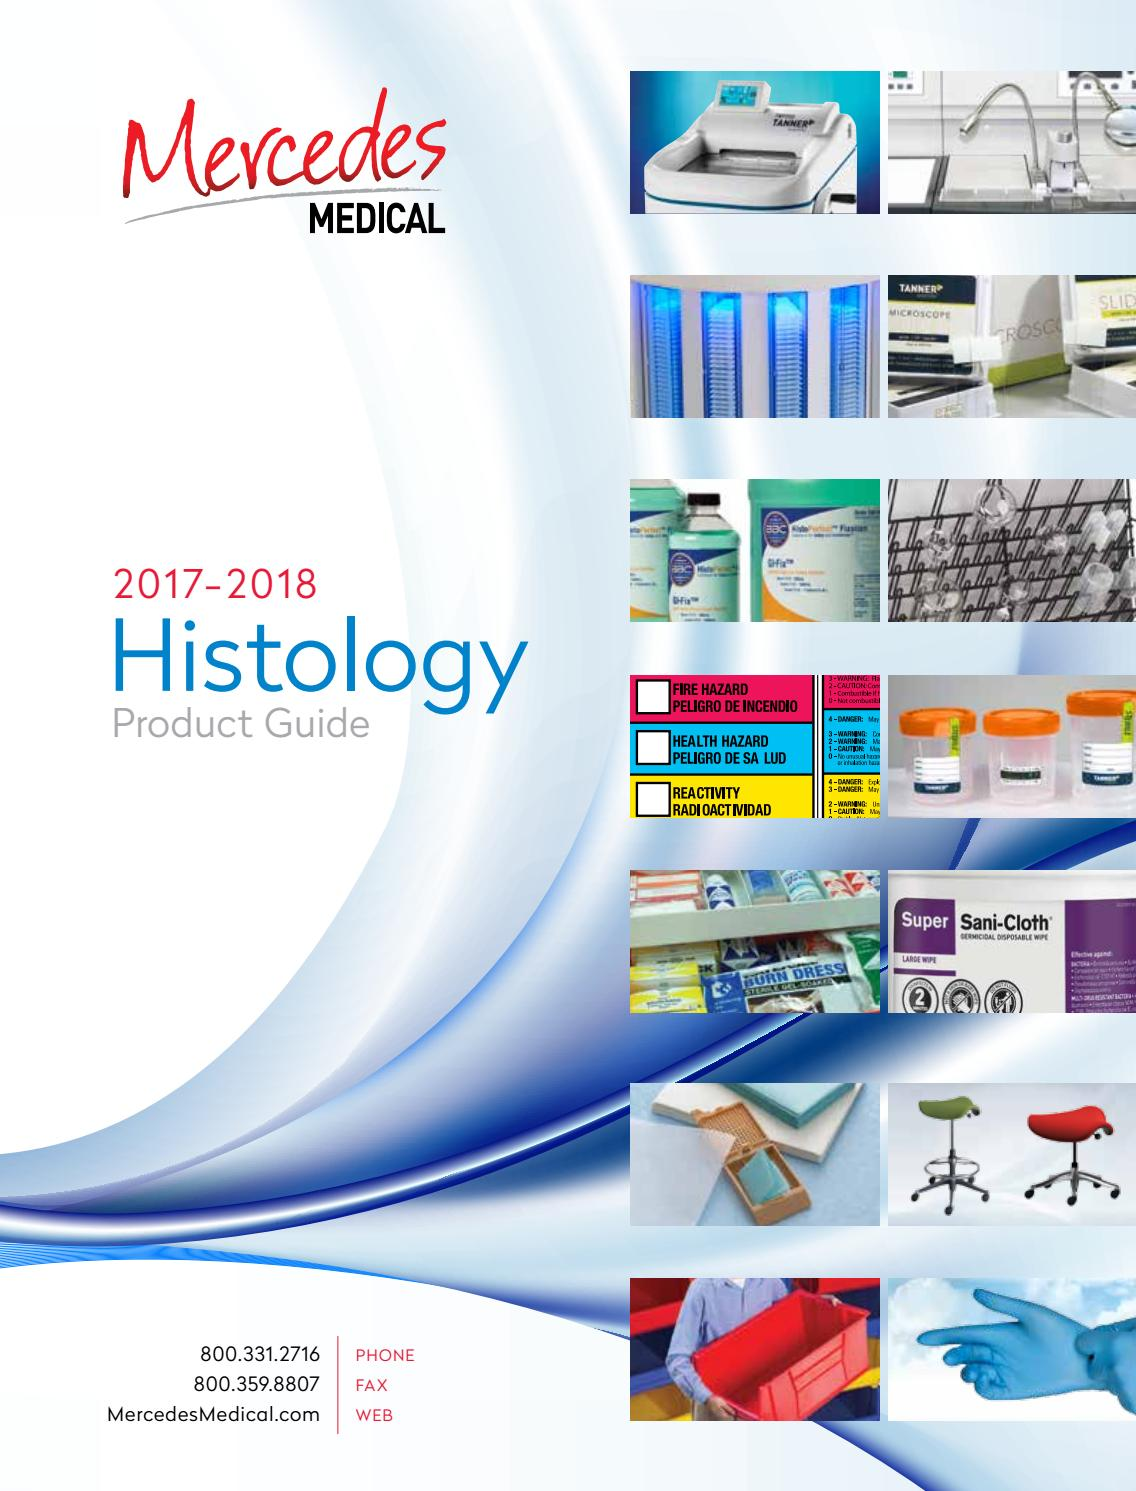 Histology Product Guide 2017-2018: Mercedes Scientific by